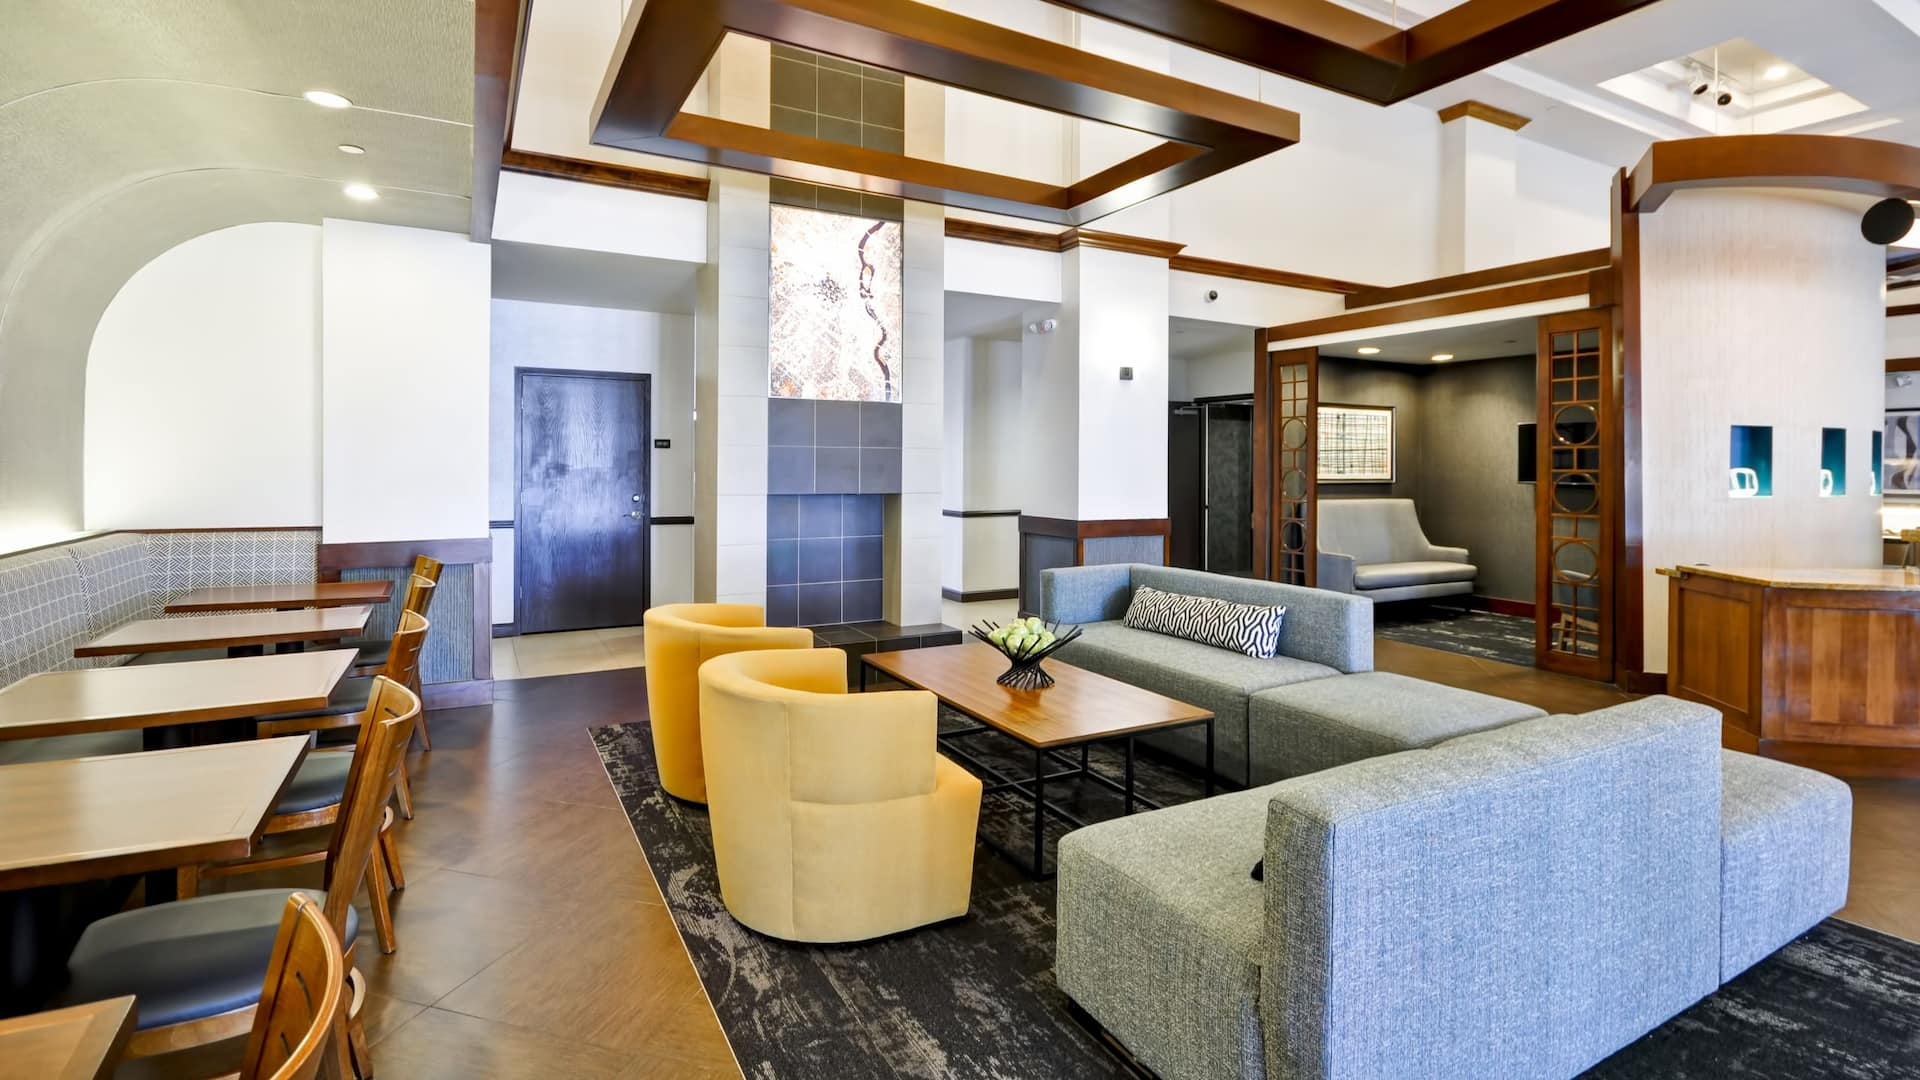 Hyatt Place Minneapolis Airport-South lobby